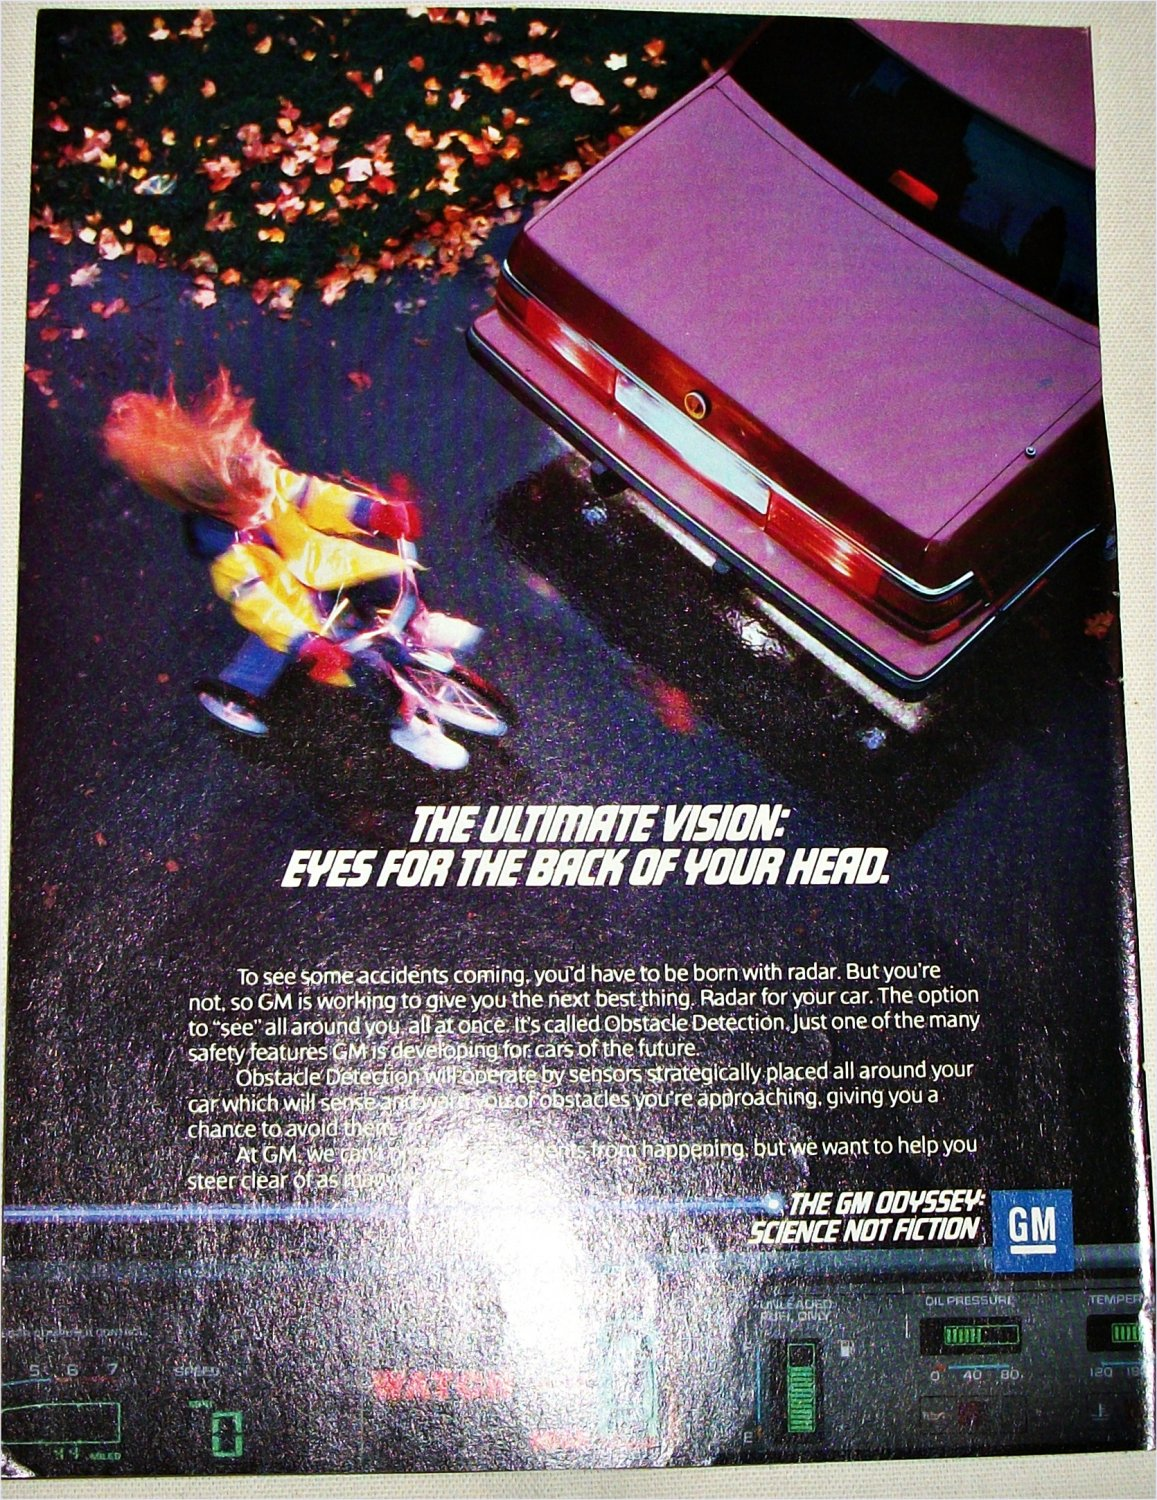 1987 GM Obstacle Detection ad